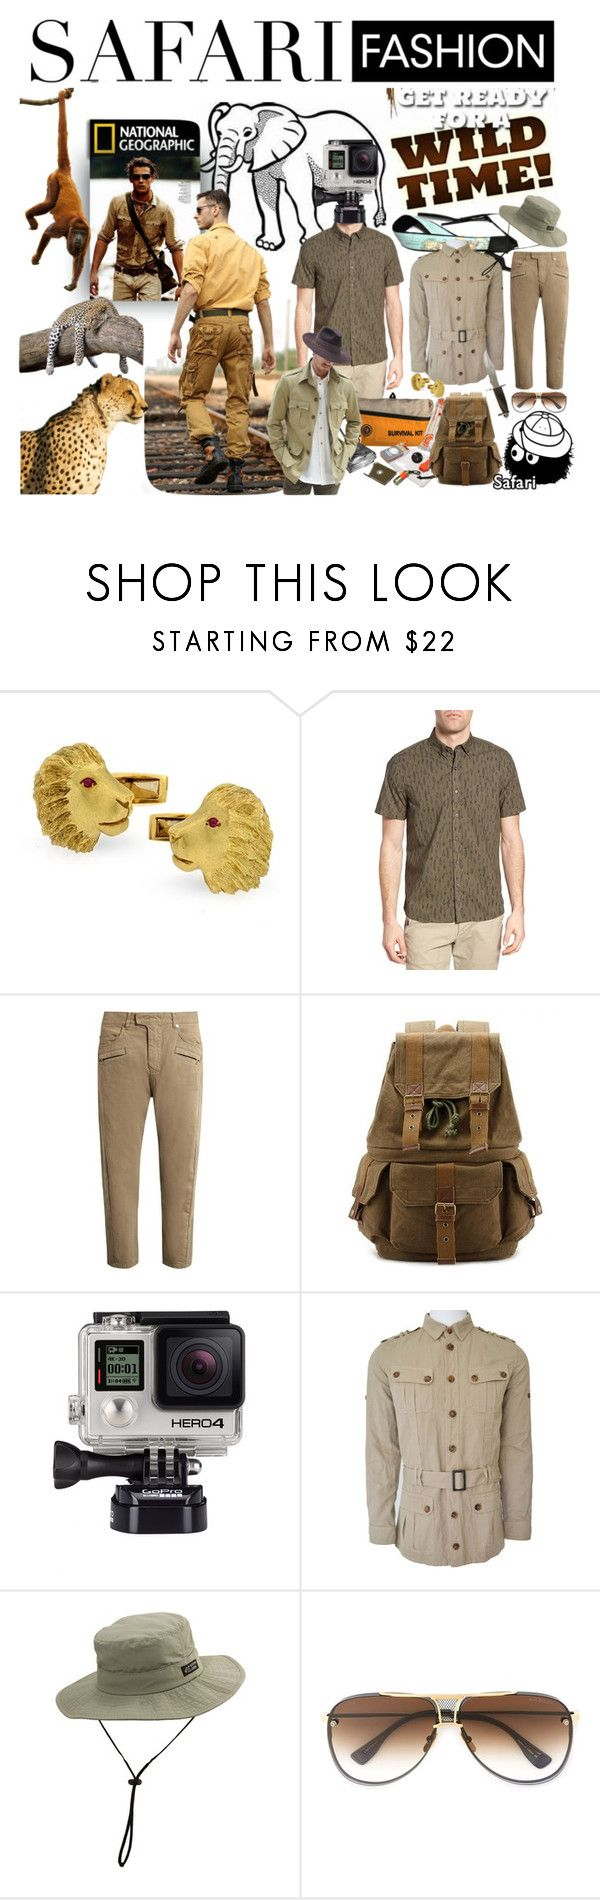 """Get Ready for a Wild Time!"" by marilyn-montoto ❤ liked on Polyvore featuring Michael Bastian, Balmain, Billabong, Brim, Dita, men's fashion and menswear"